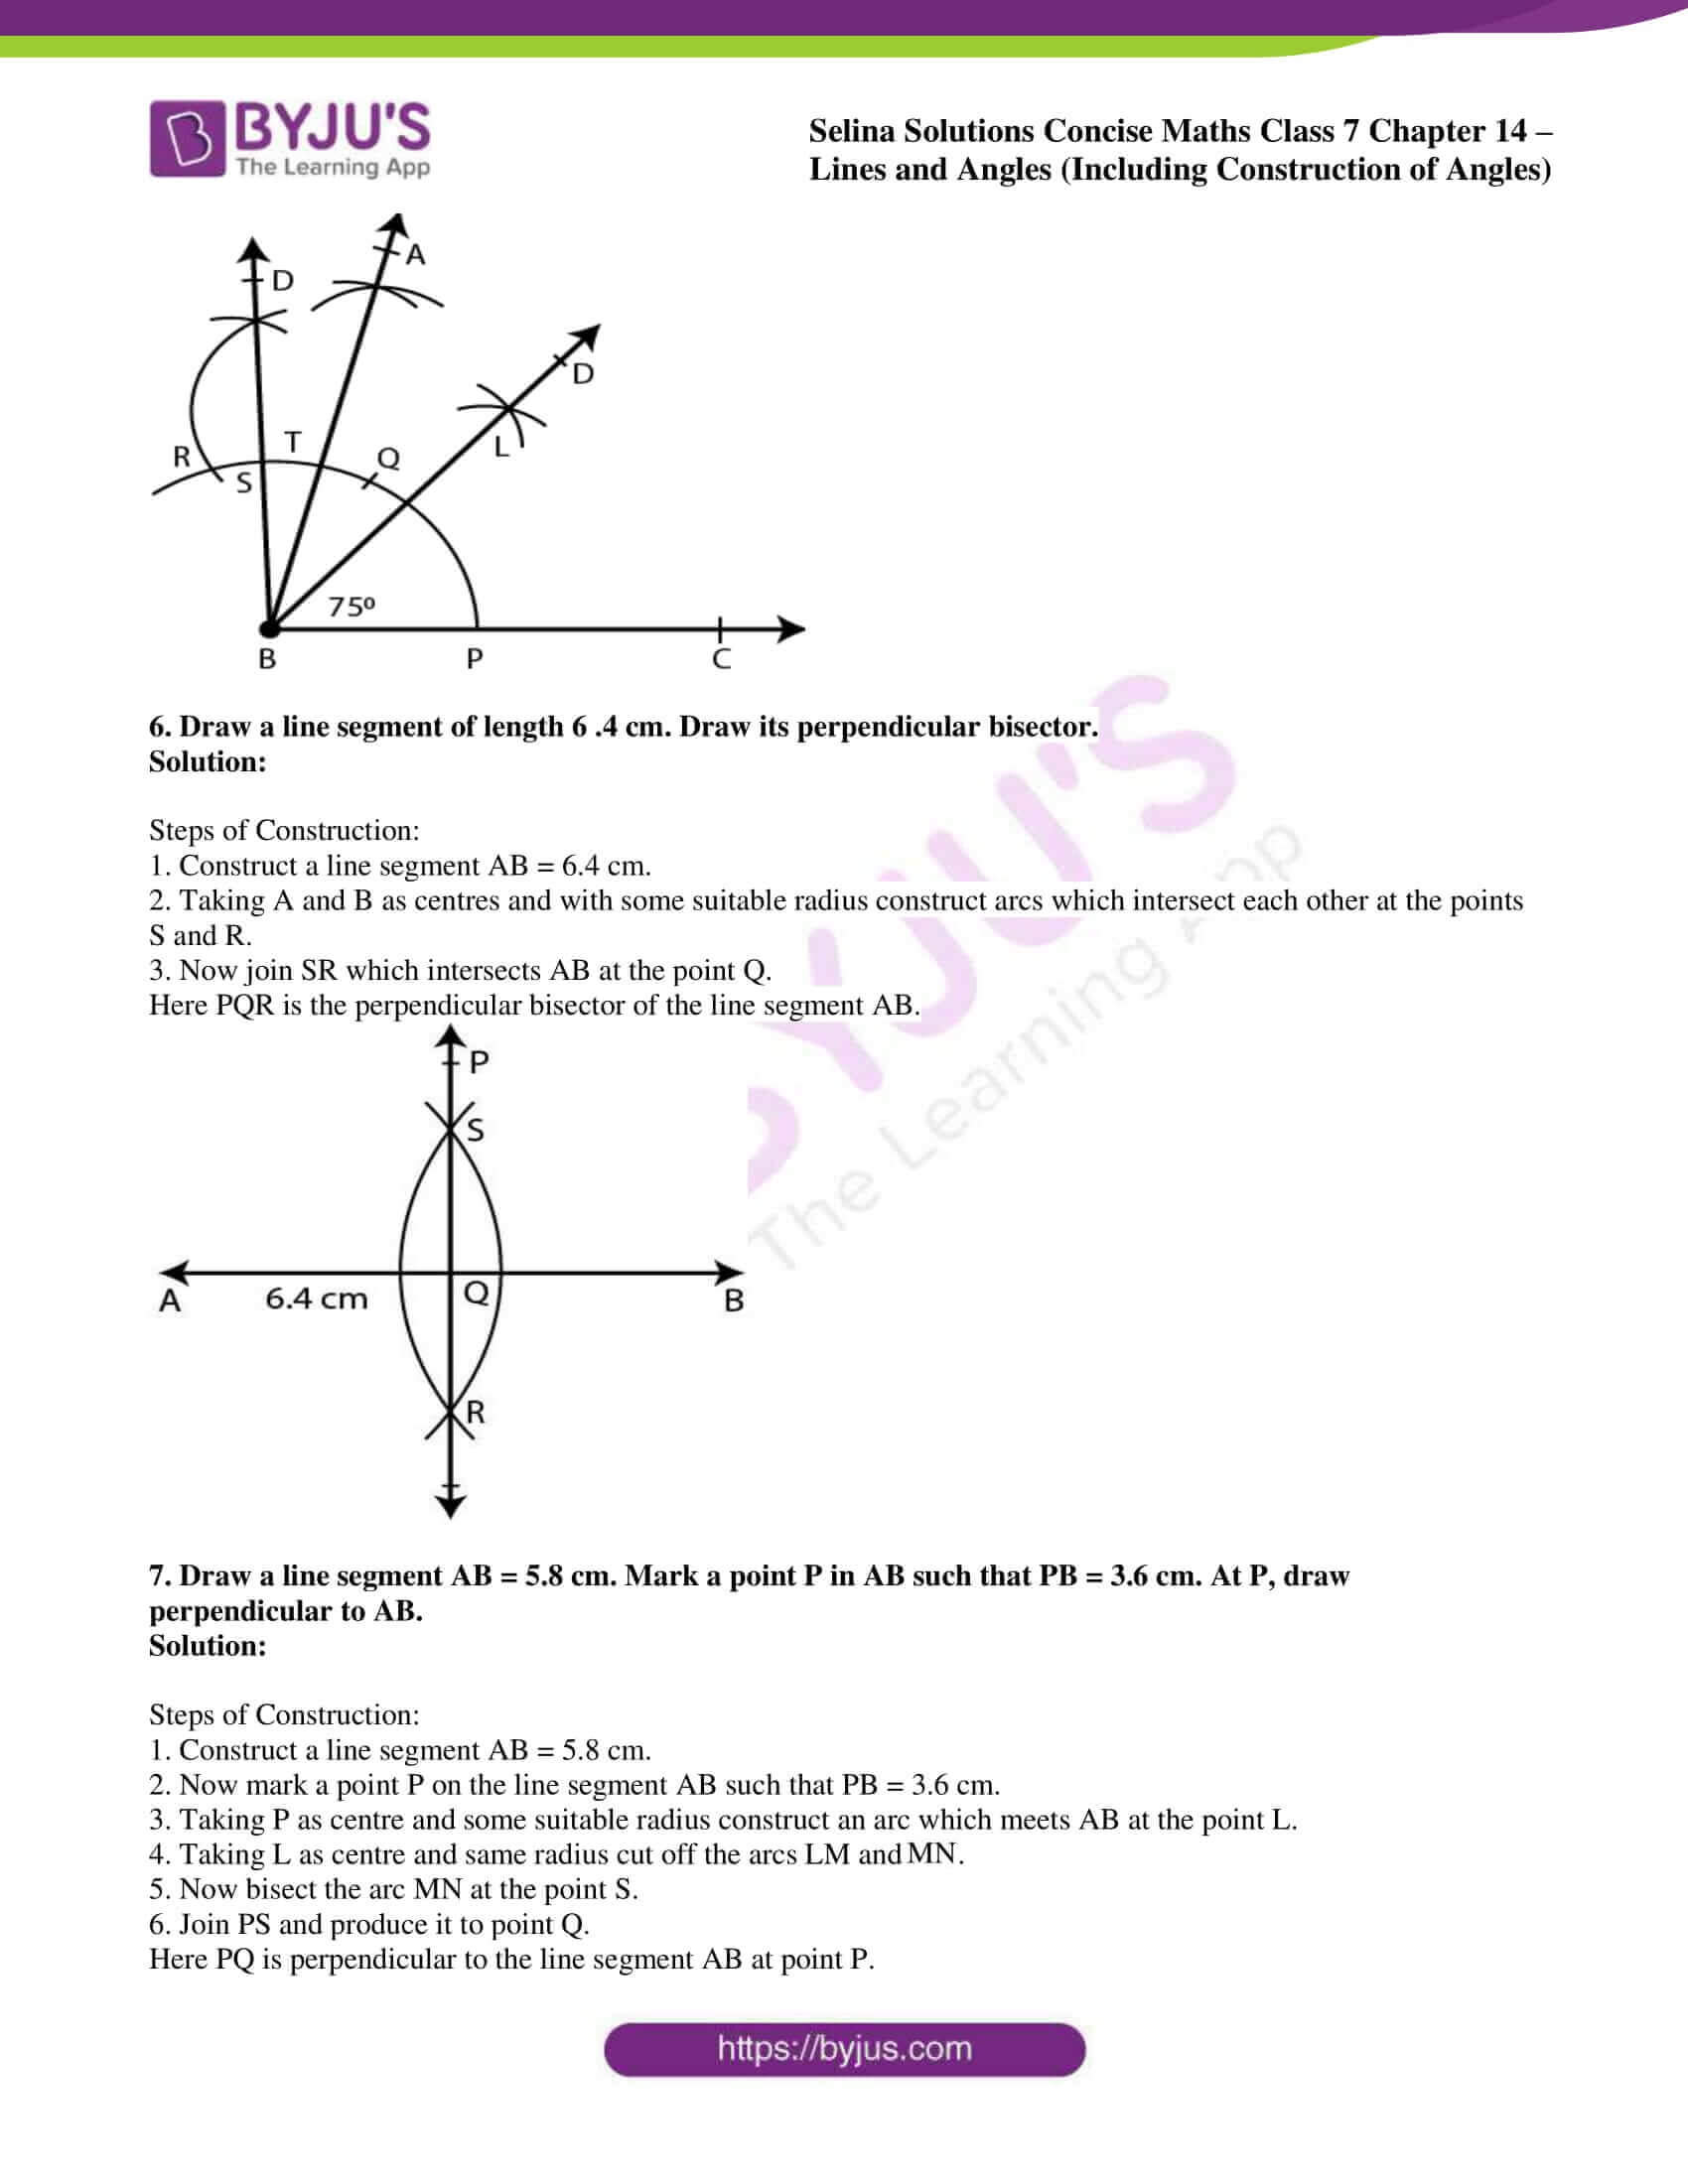 selina solution concise maths class 7 ch 14c 5